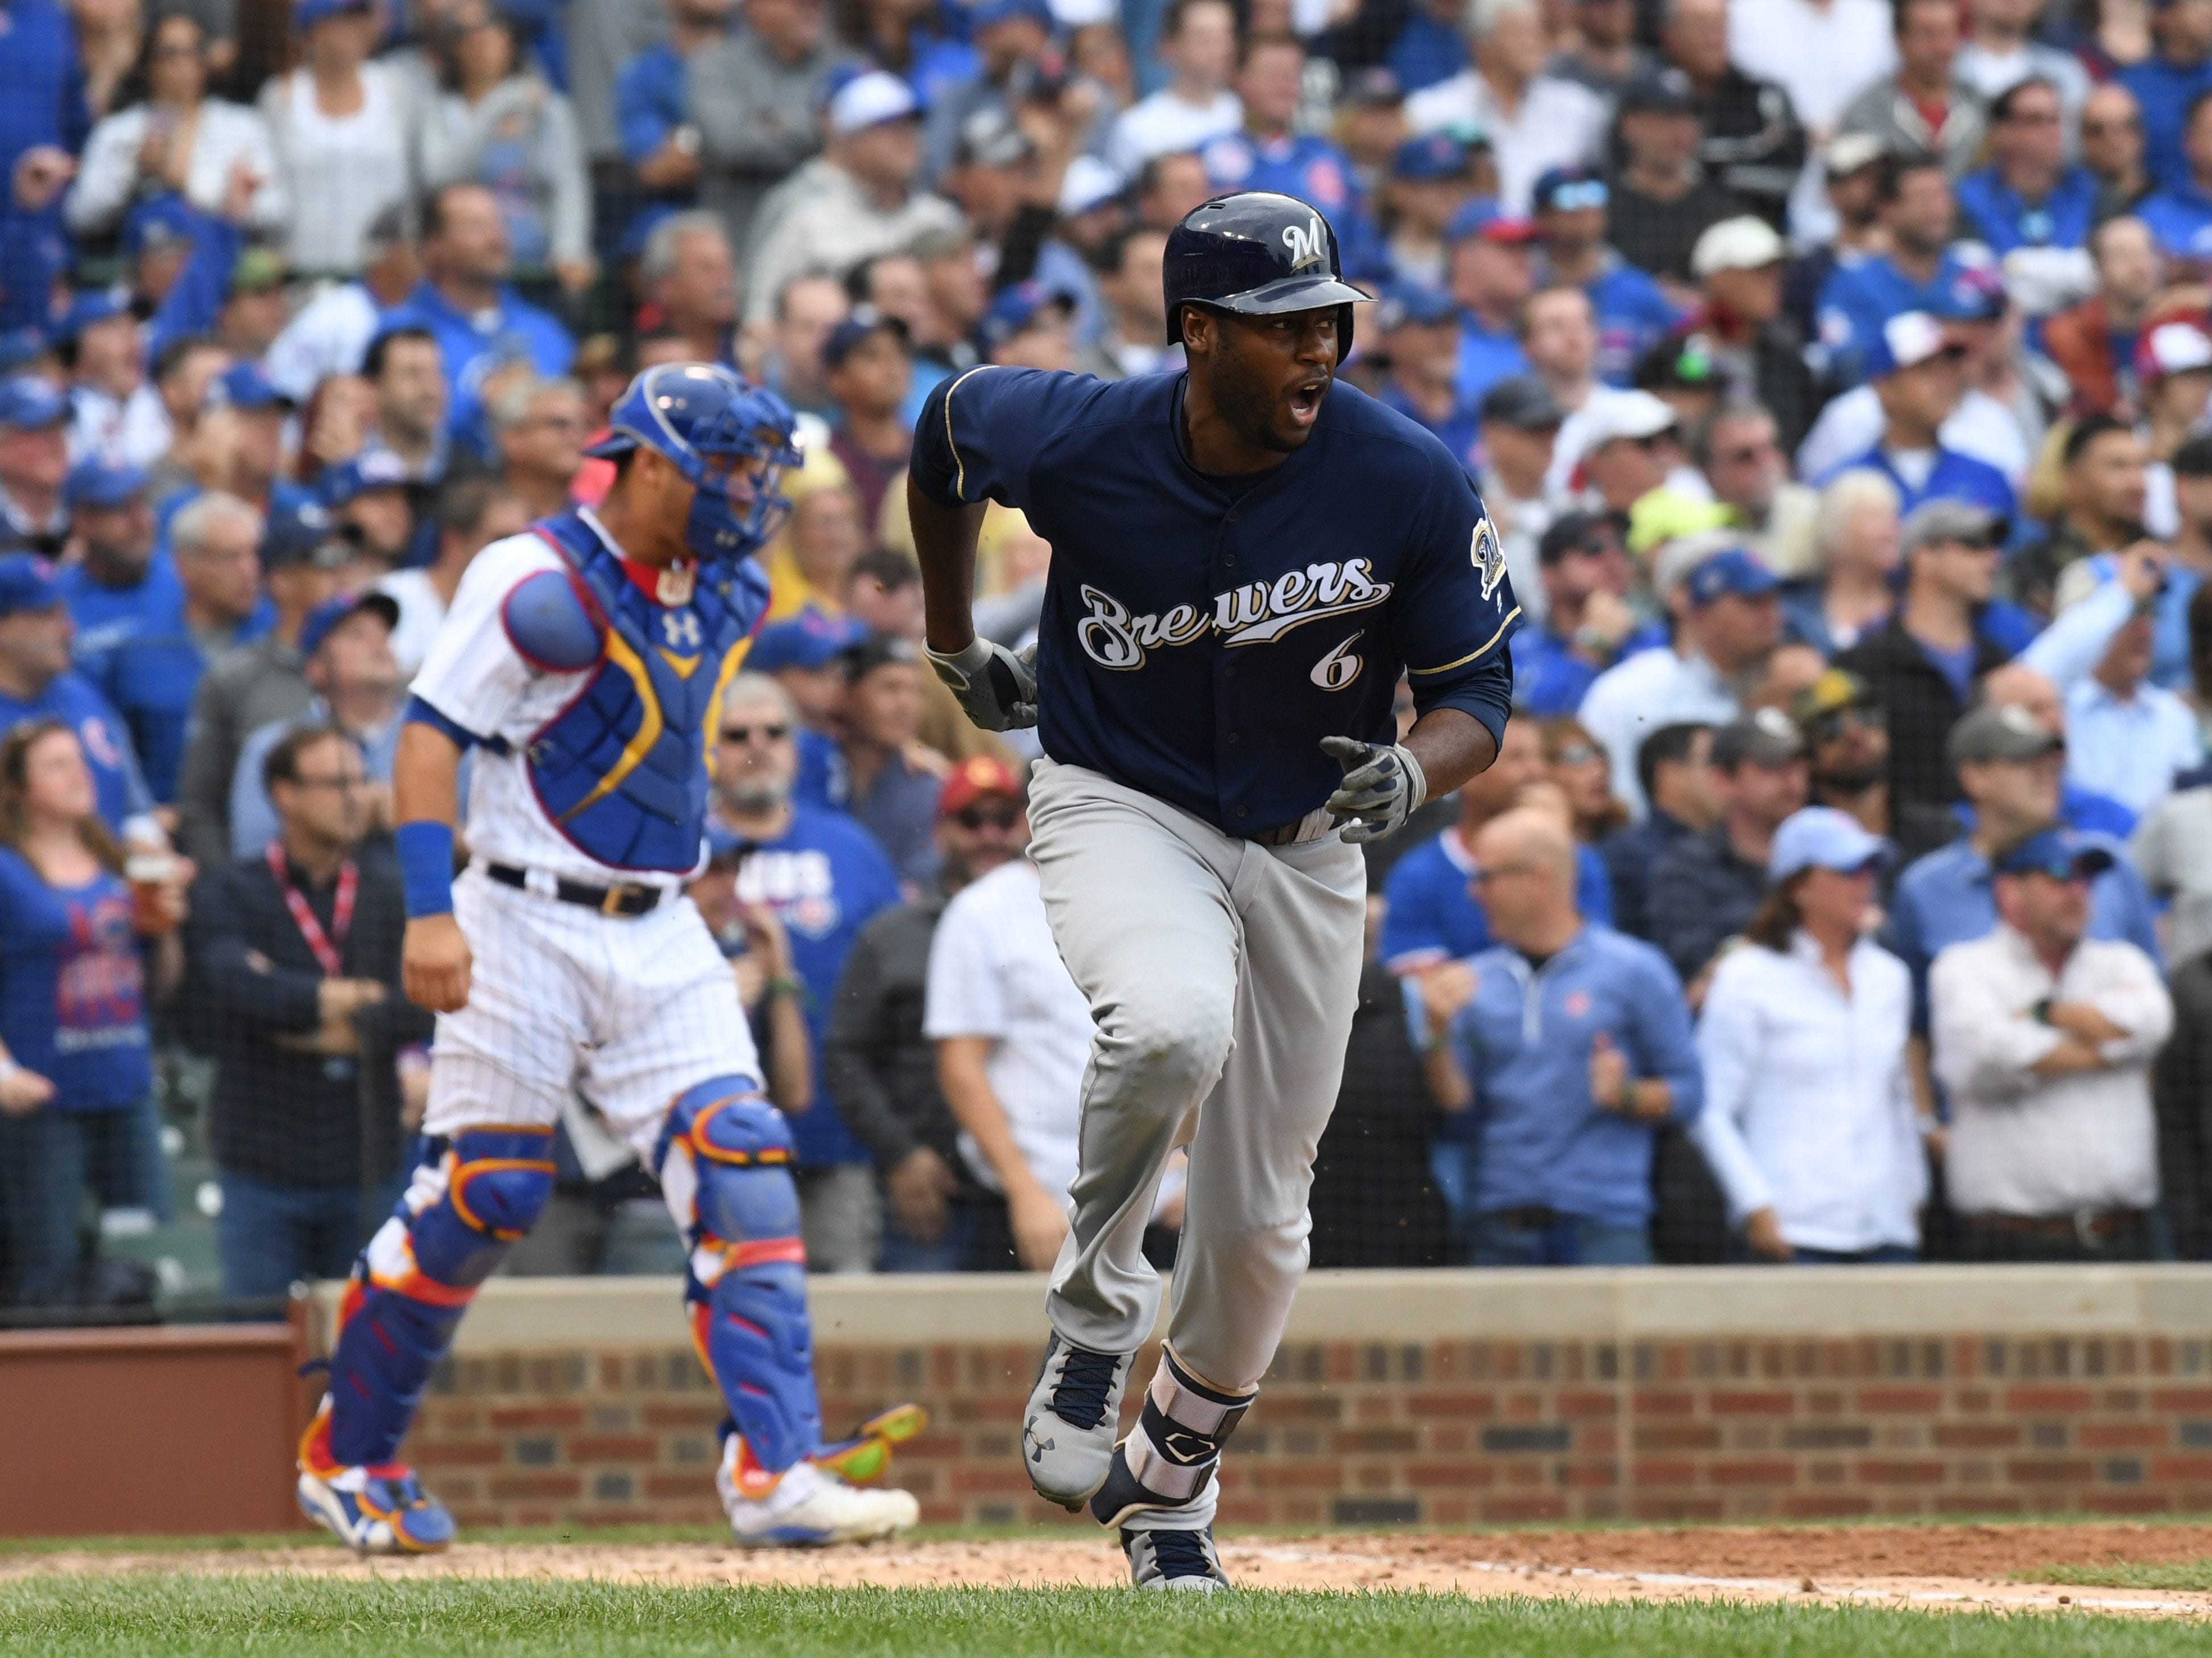 Brewers center fielder Lorenzo Cain  hits an RBI single in the eighth inning to put his team ahead.